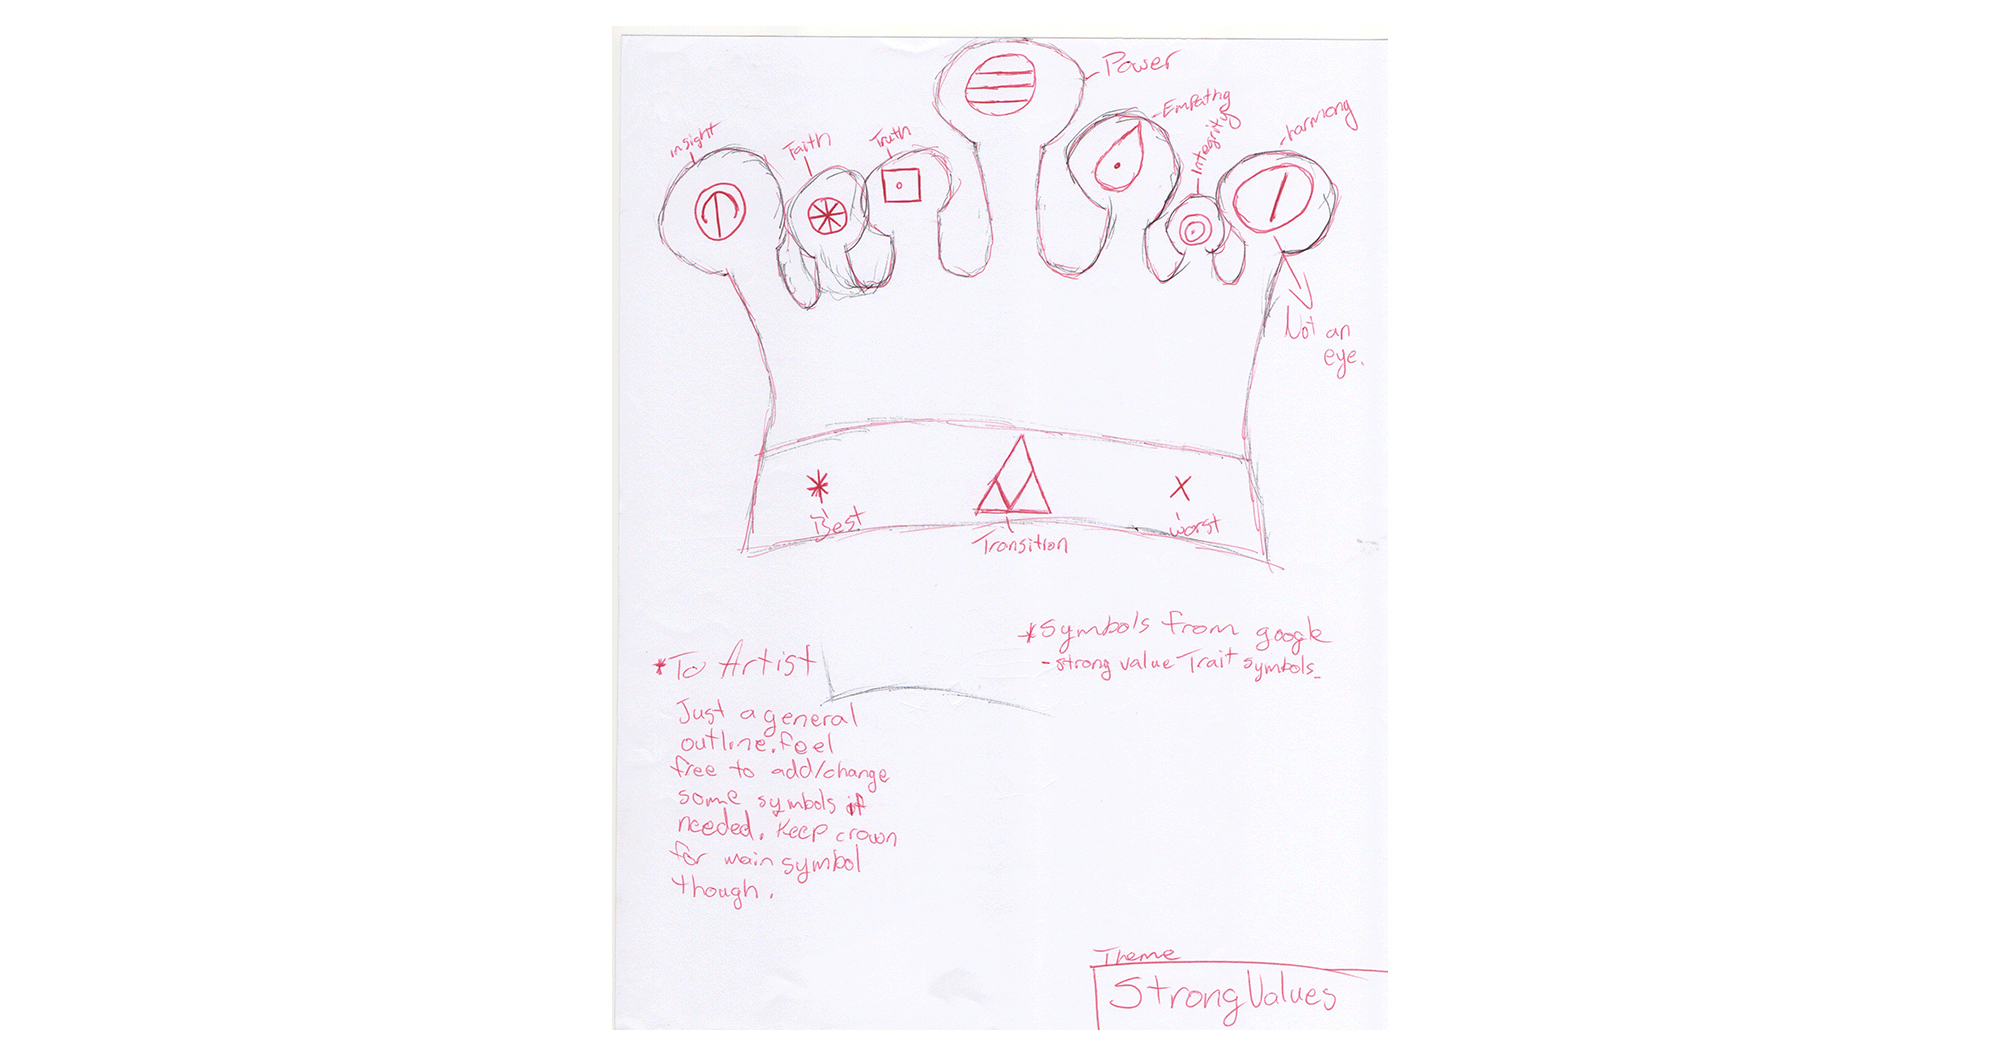 Sketch of crown with symbols